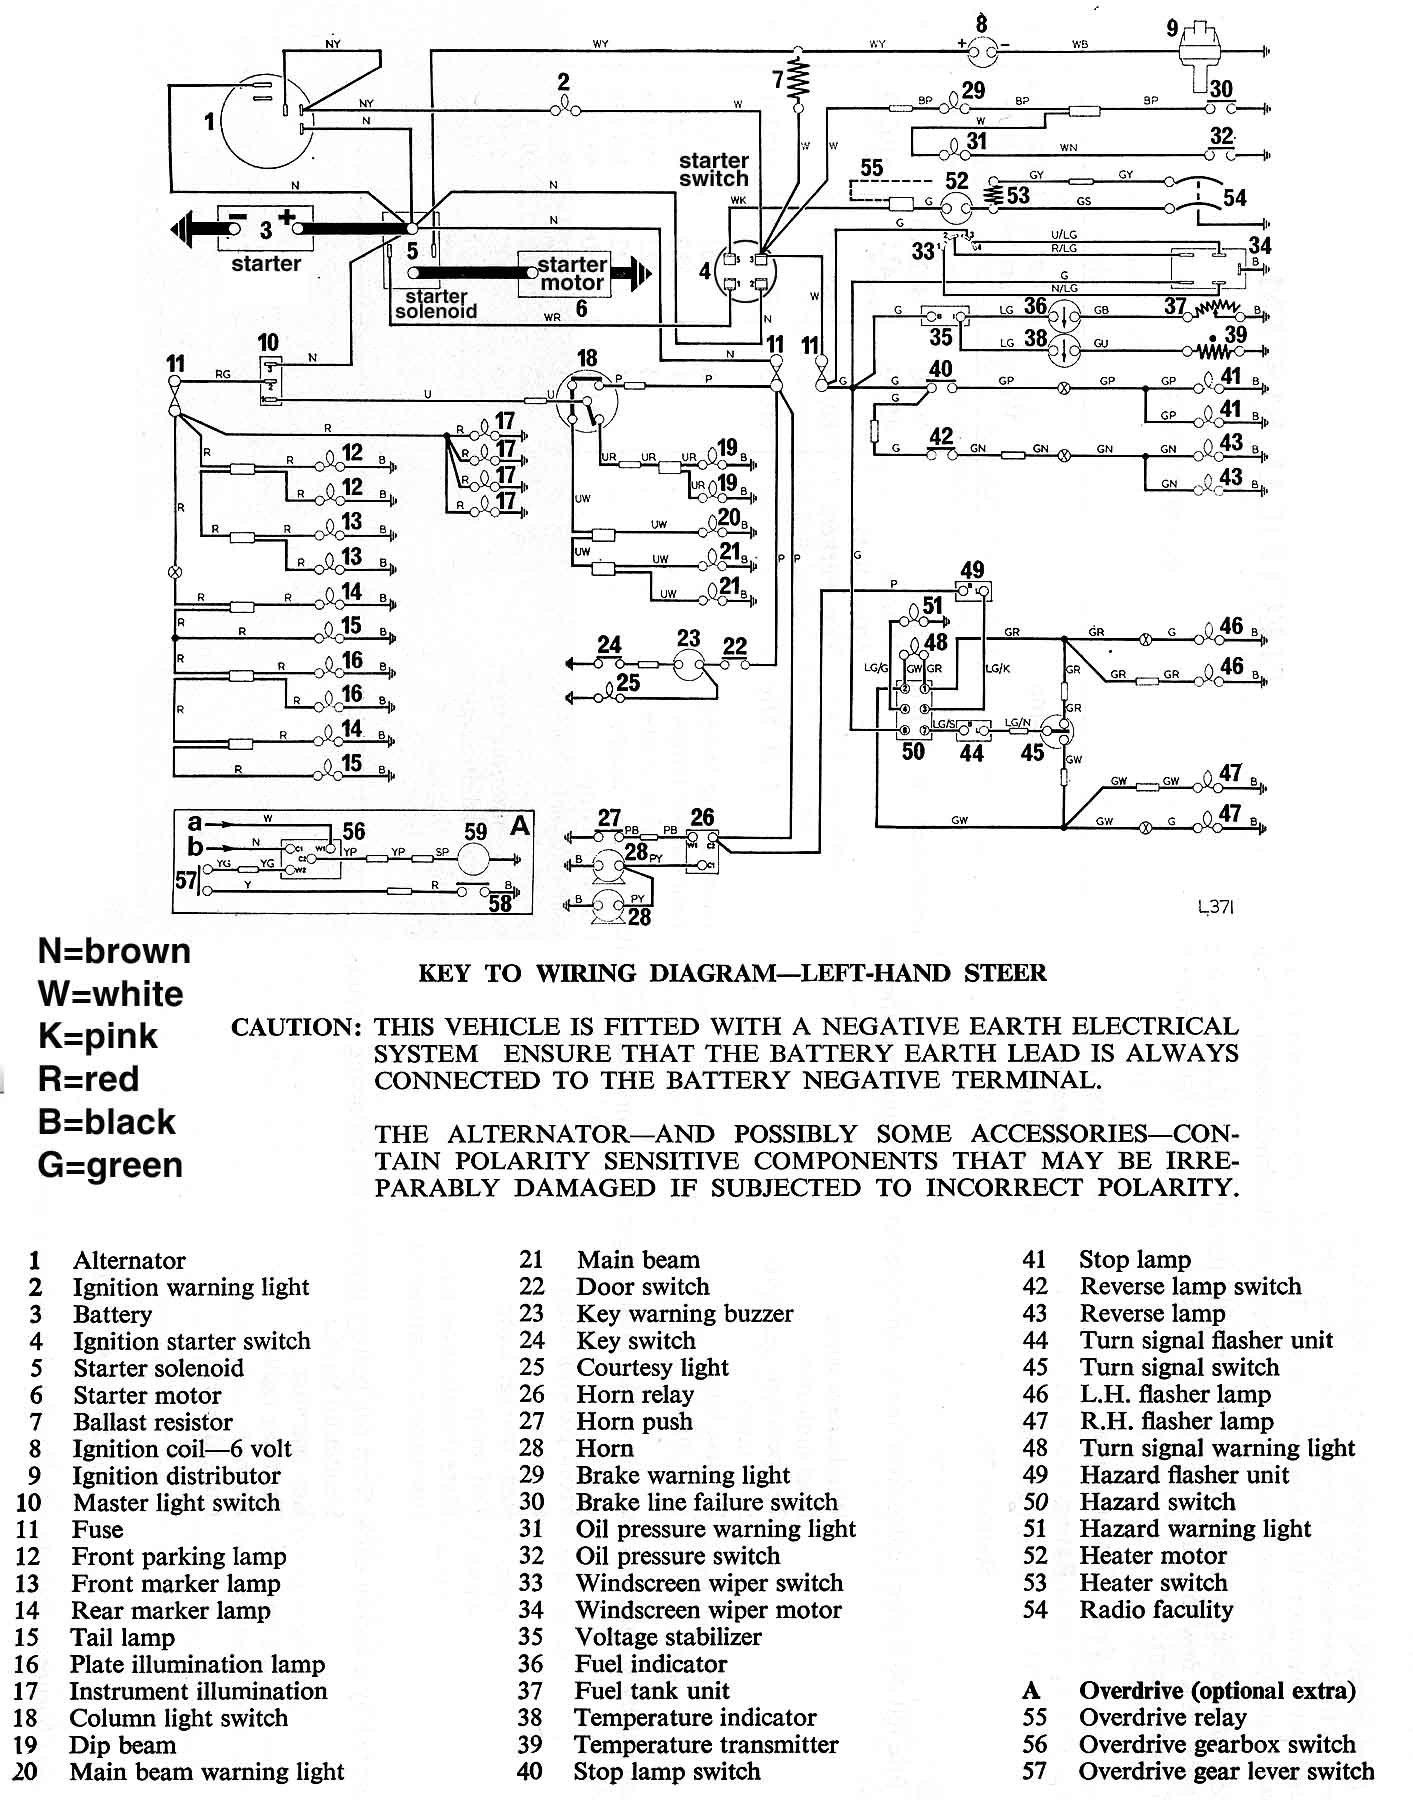 1971 triumph tr6 wiring diagram whirlpool refrigerator ice maker ignition click and relay install tech forum